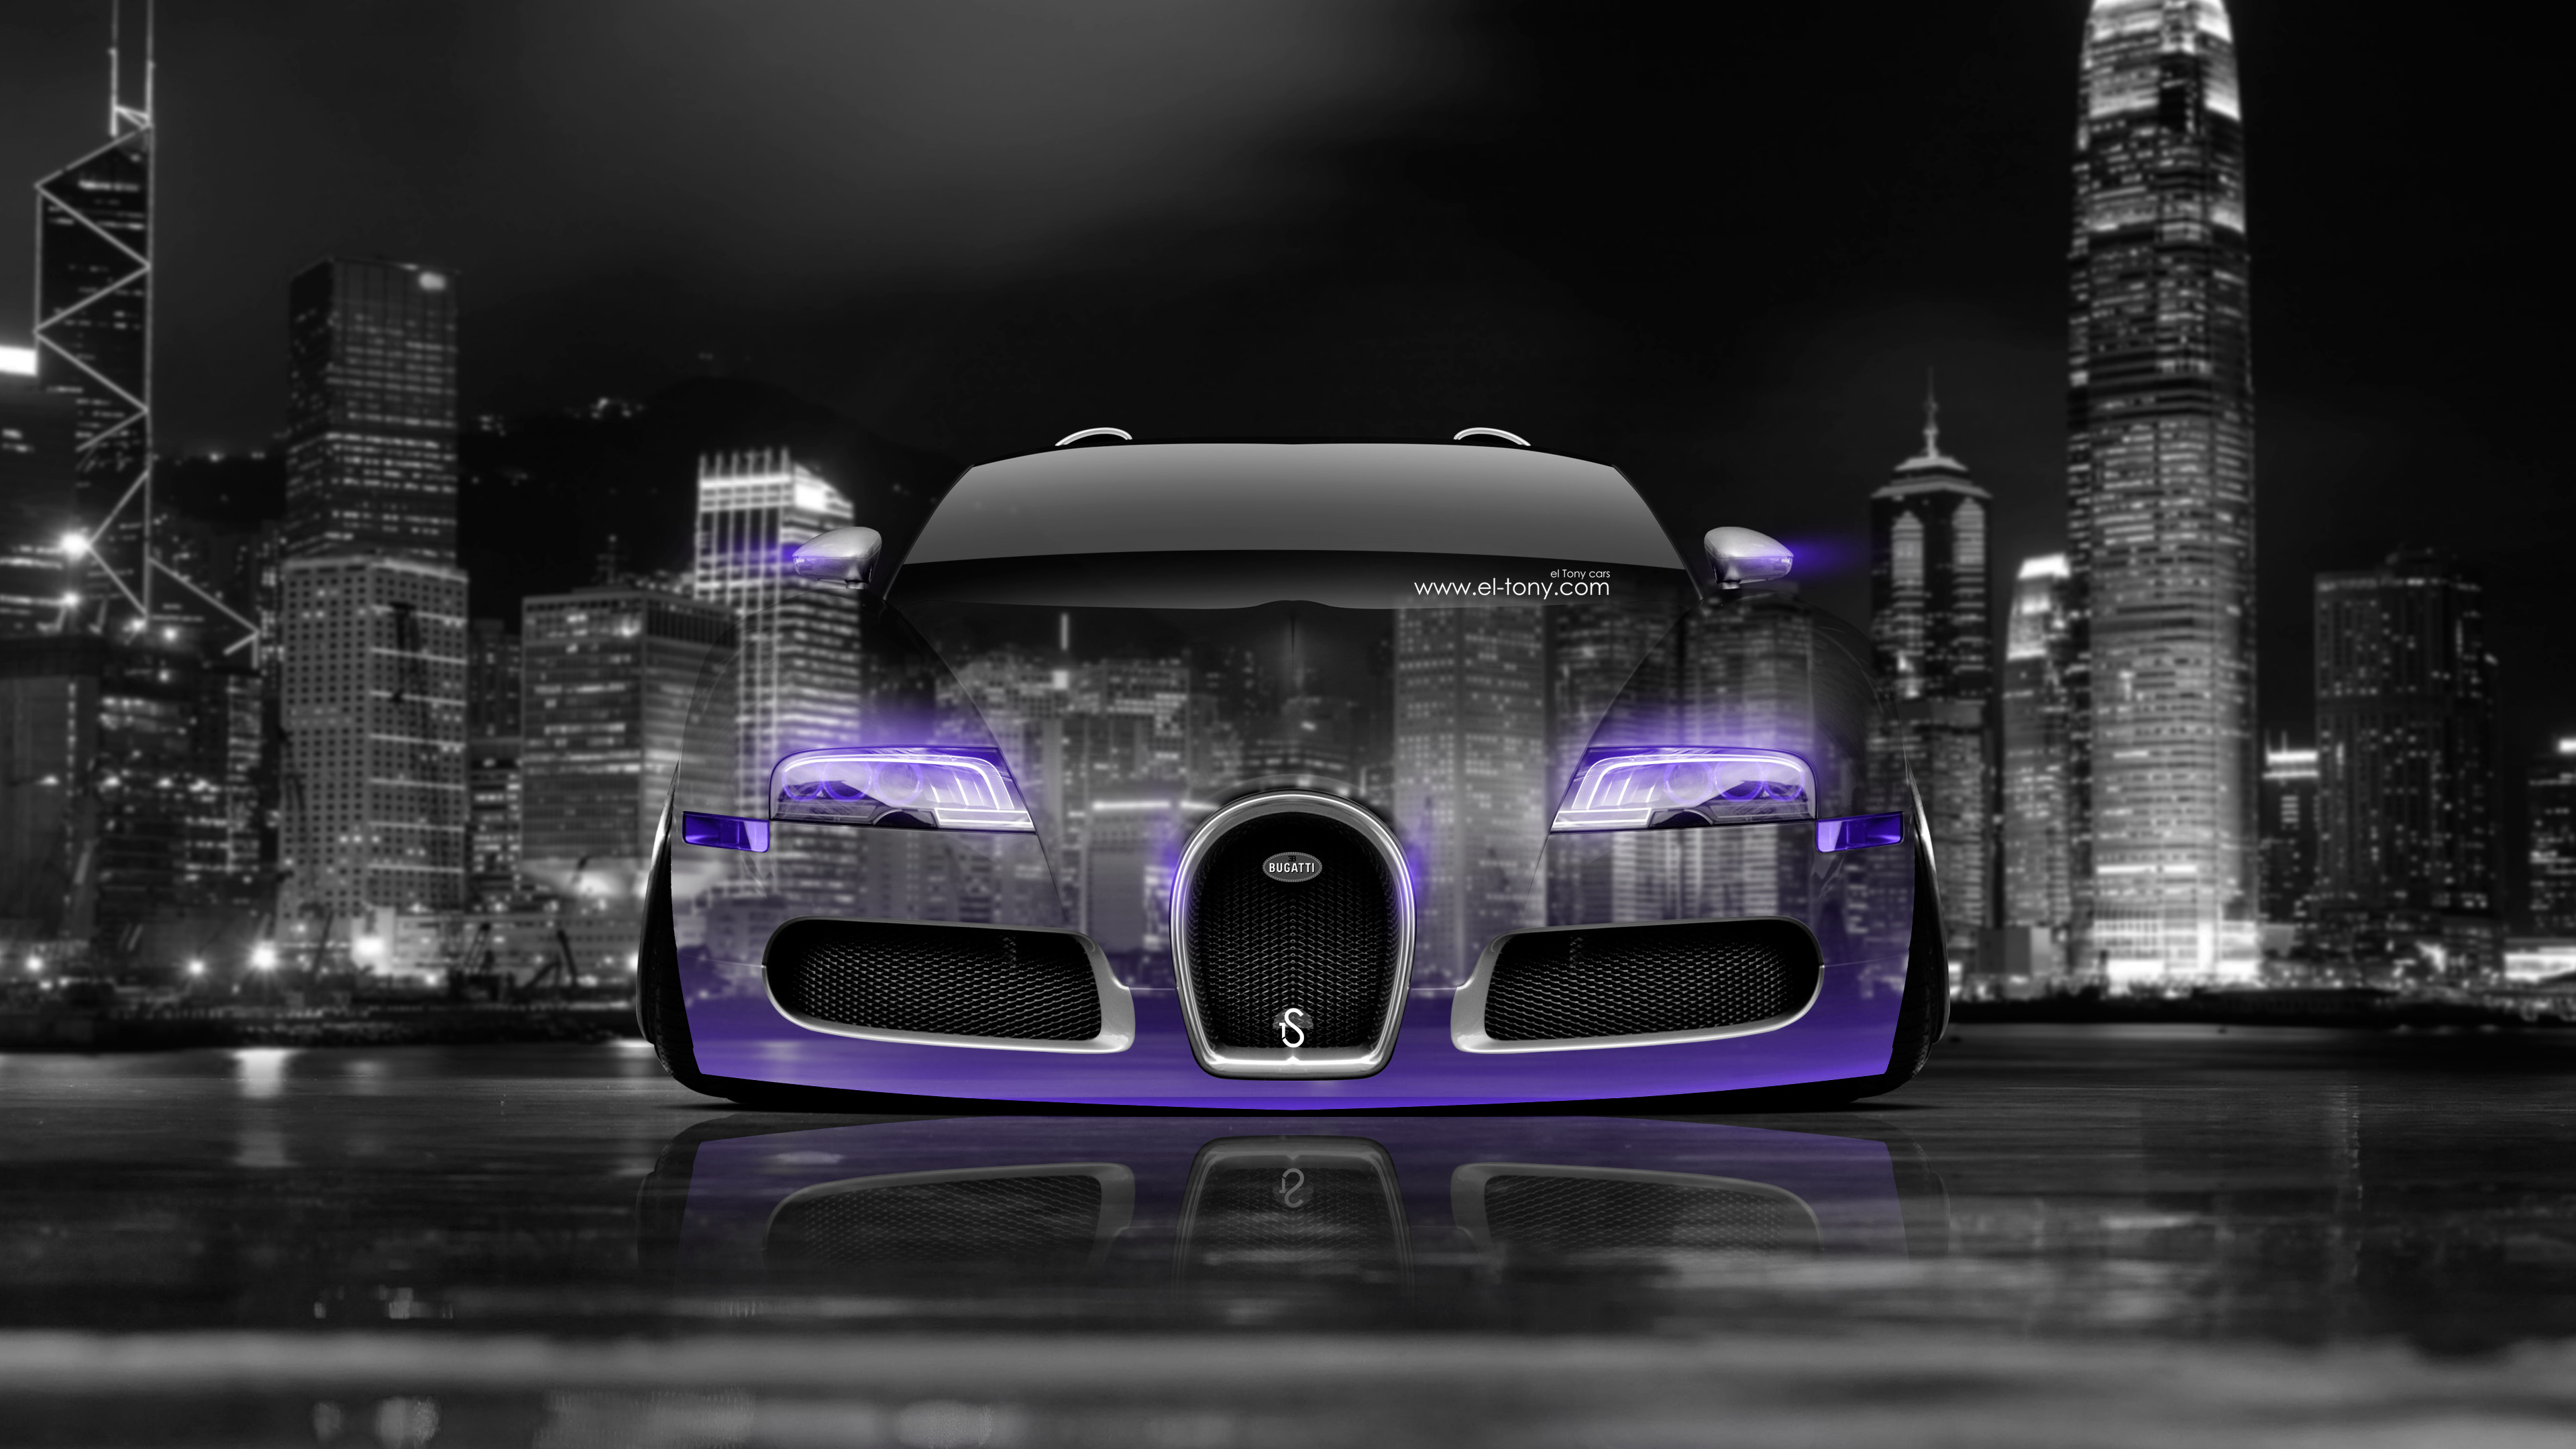 Exceptionnel Bugatti Veyron Front Crystal City Car 2014 Violet